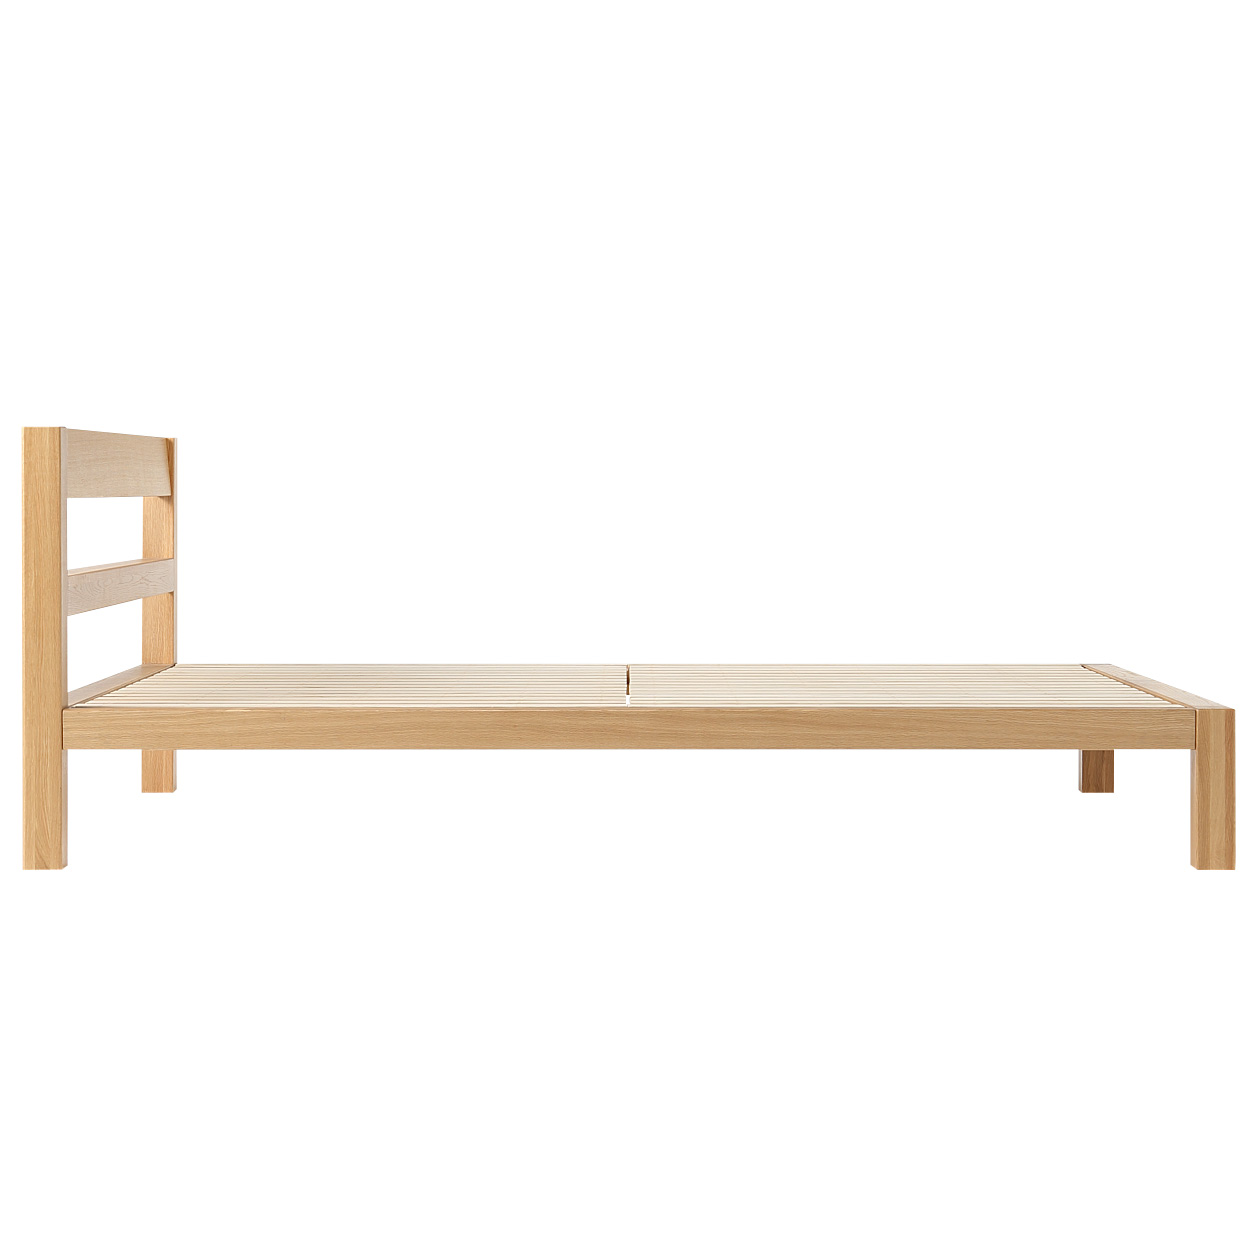 Oak Wood Double Bed